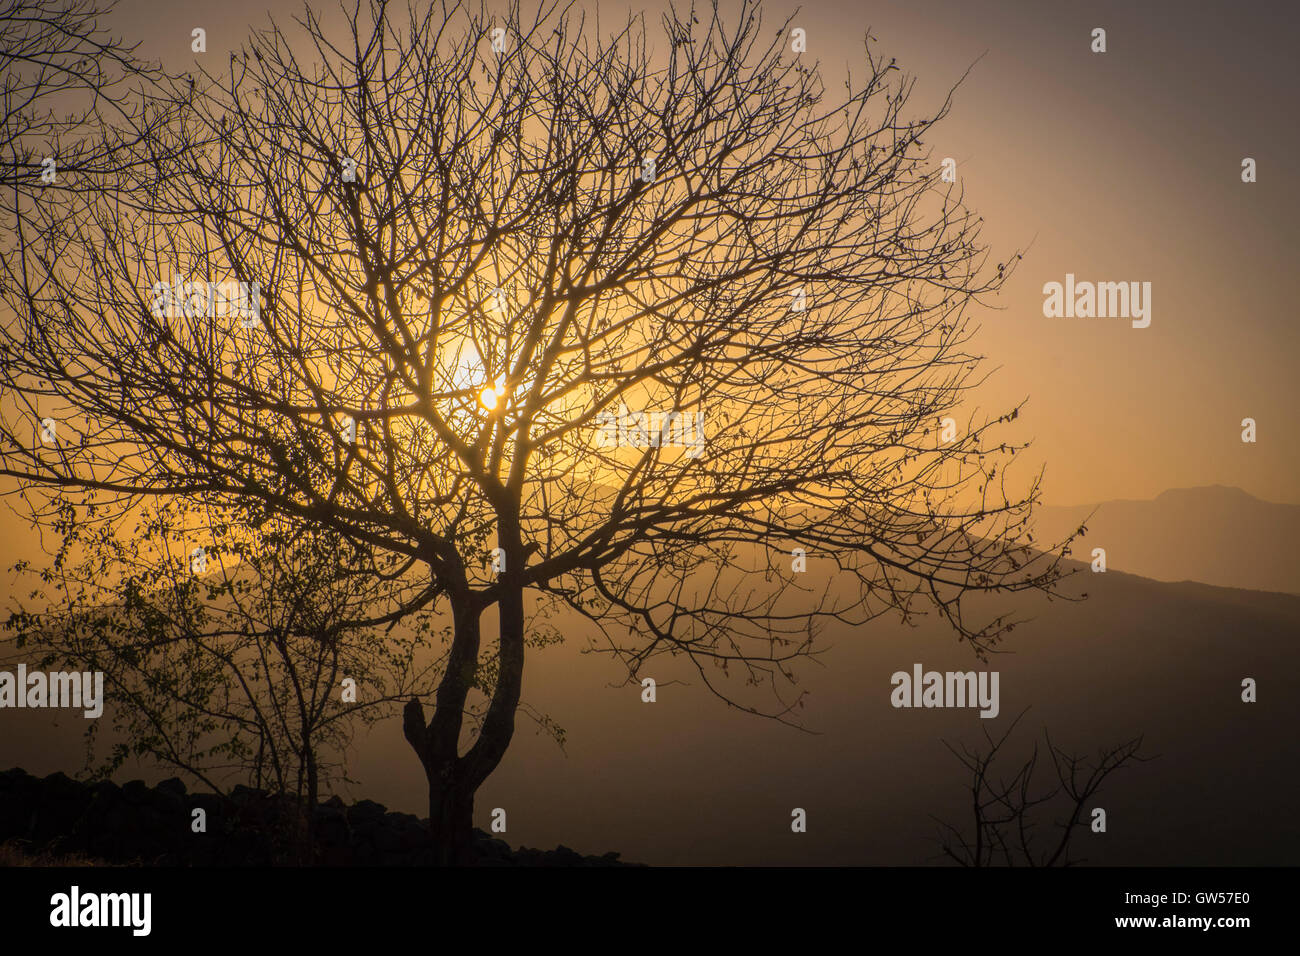 Sunrise over the Rift Valley as seen through an acacia tree in southern Ethiopia Stock Photo